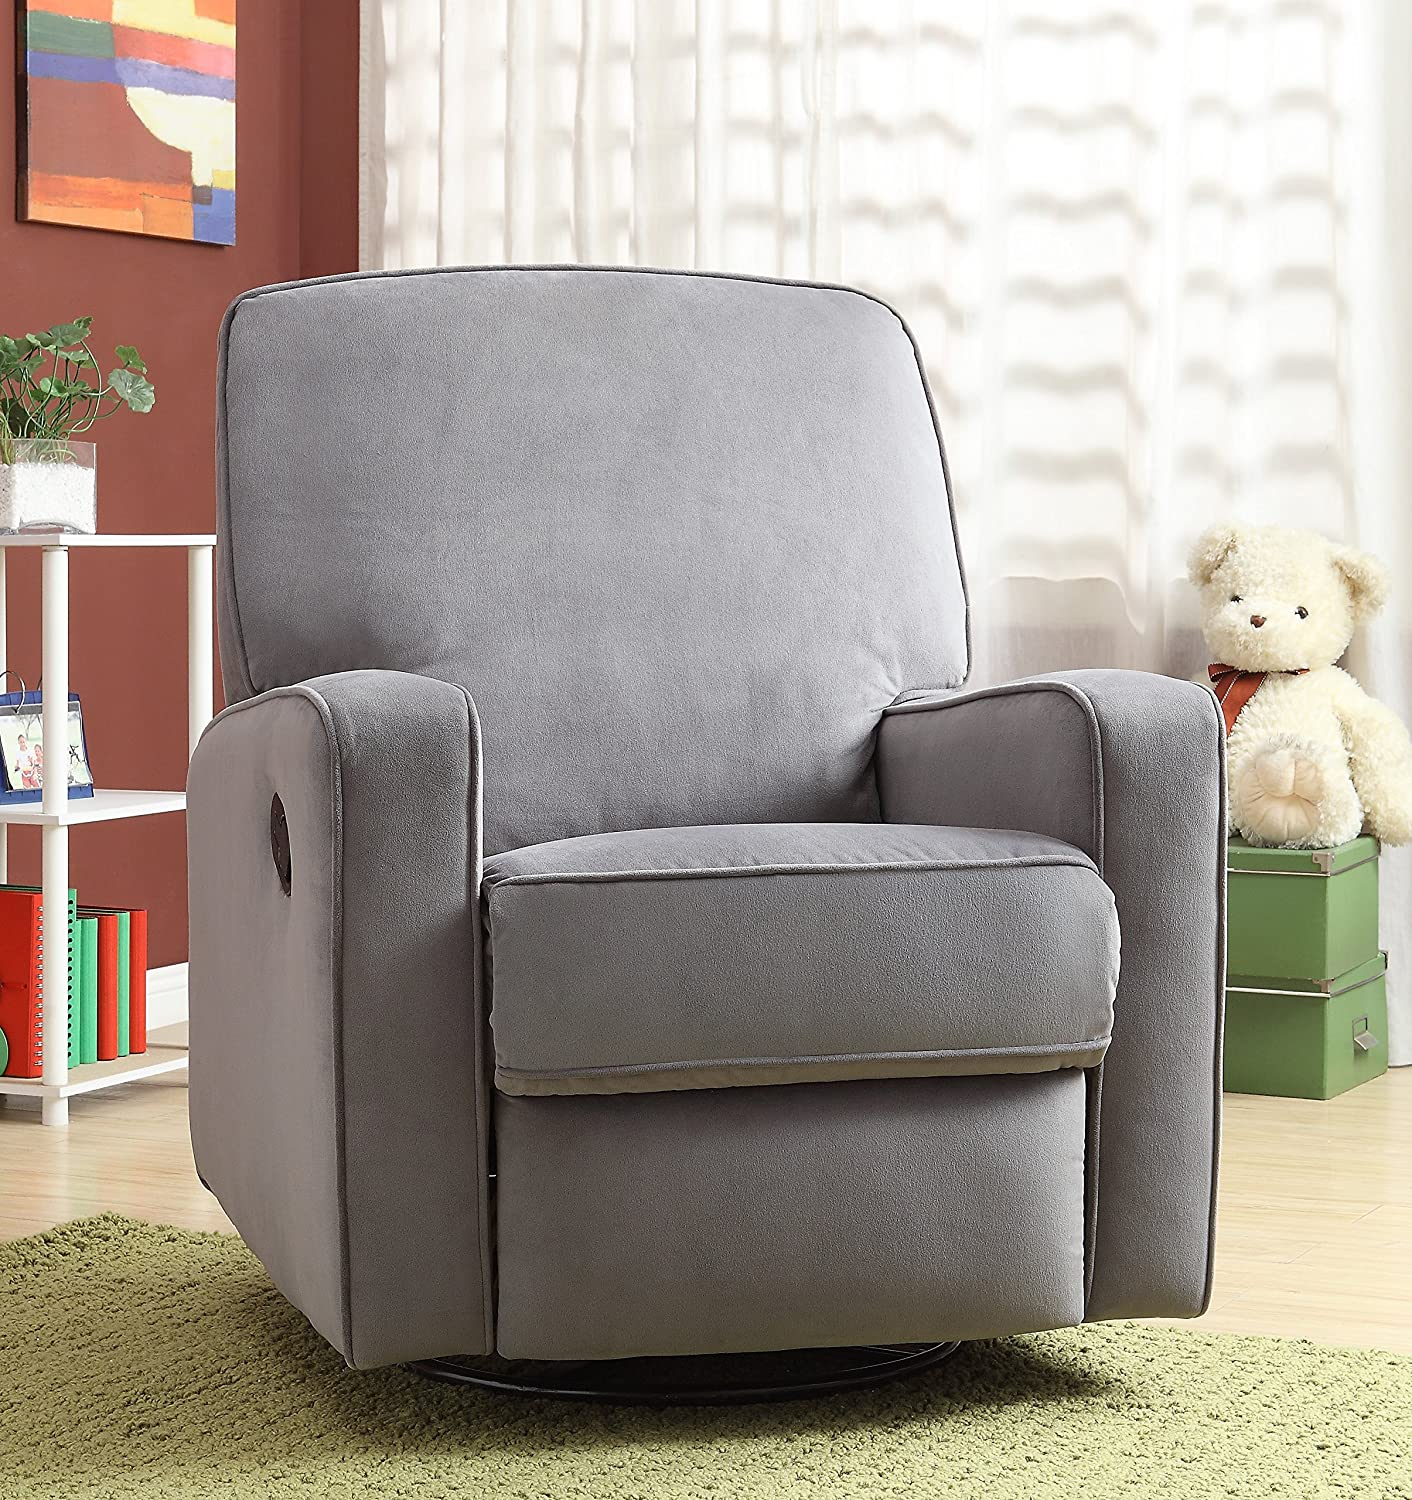 Pulaski Sutton Swivel Glider Recliner & Glider recliner reviews - Comfortable recliner.com islam-shia.org